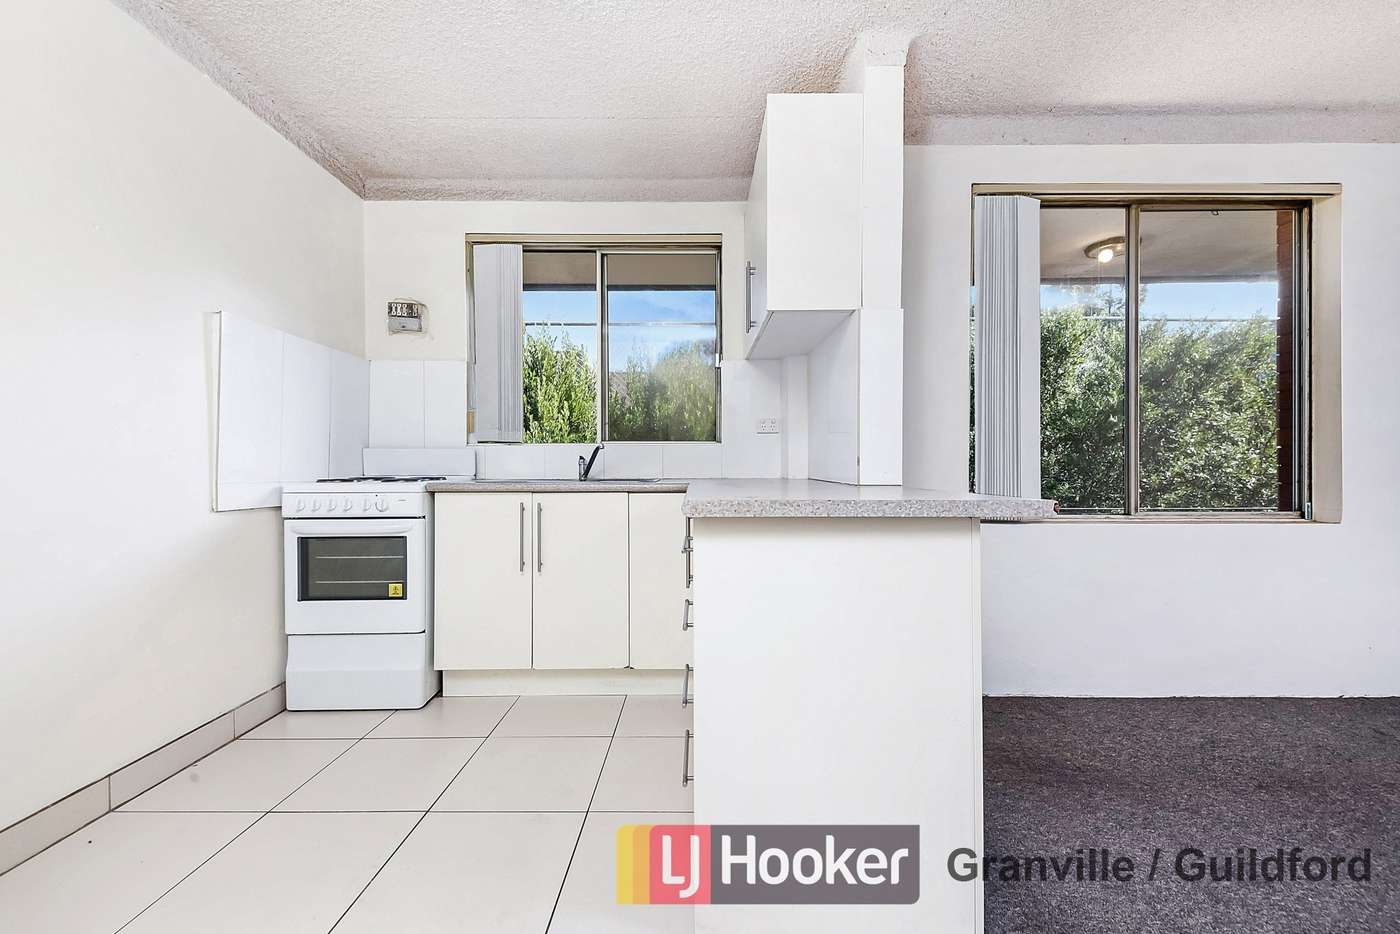 Sixth view of Homely blockOfUnits listing, 6 Maud Street, Granville NSW 2142